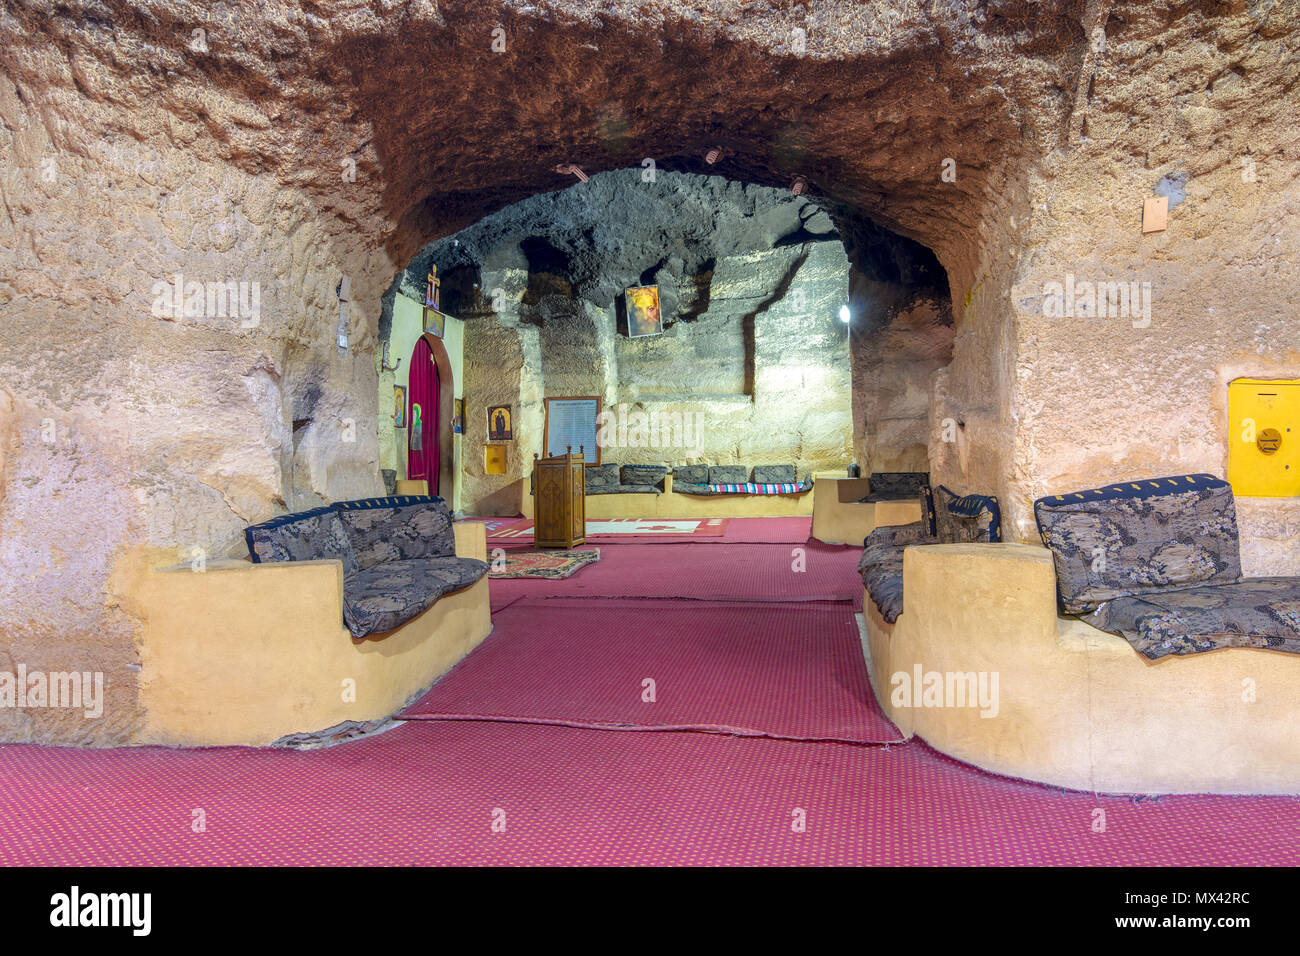 Church of Saint Paula, one of seven Churches and Chapels hidden in a series of caves in the Mokattam (Muqattam) hills, Cairo, Egypt - Stock Image